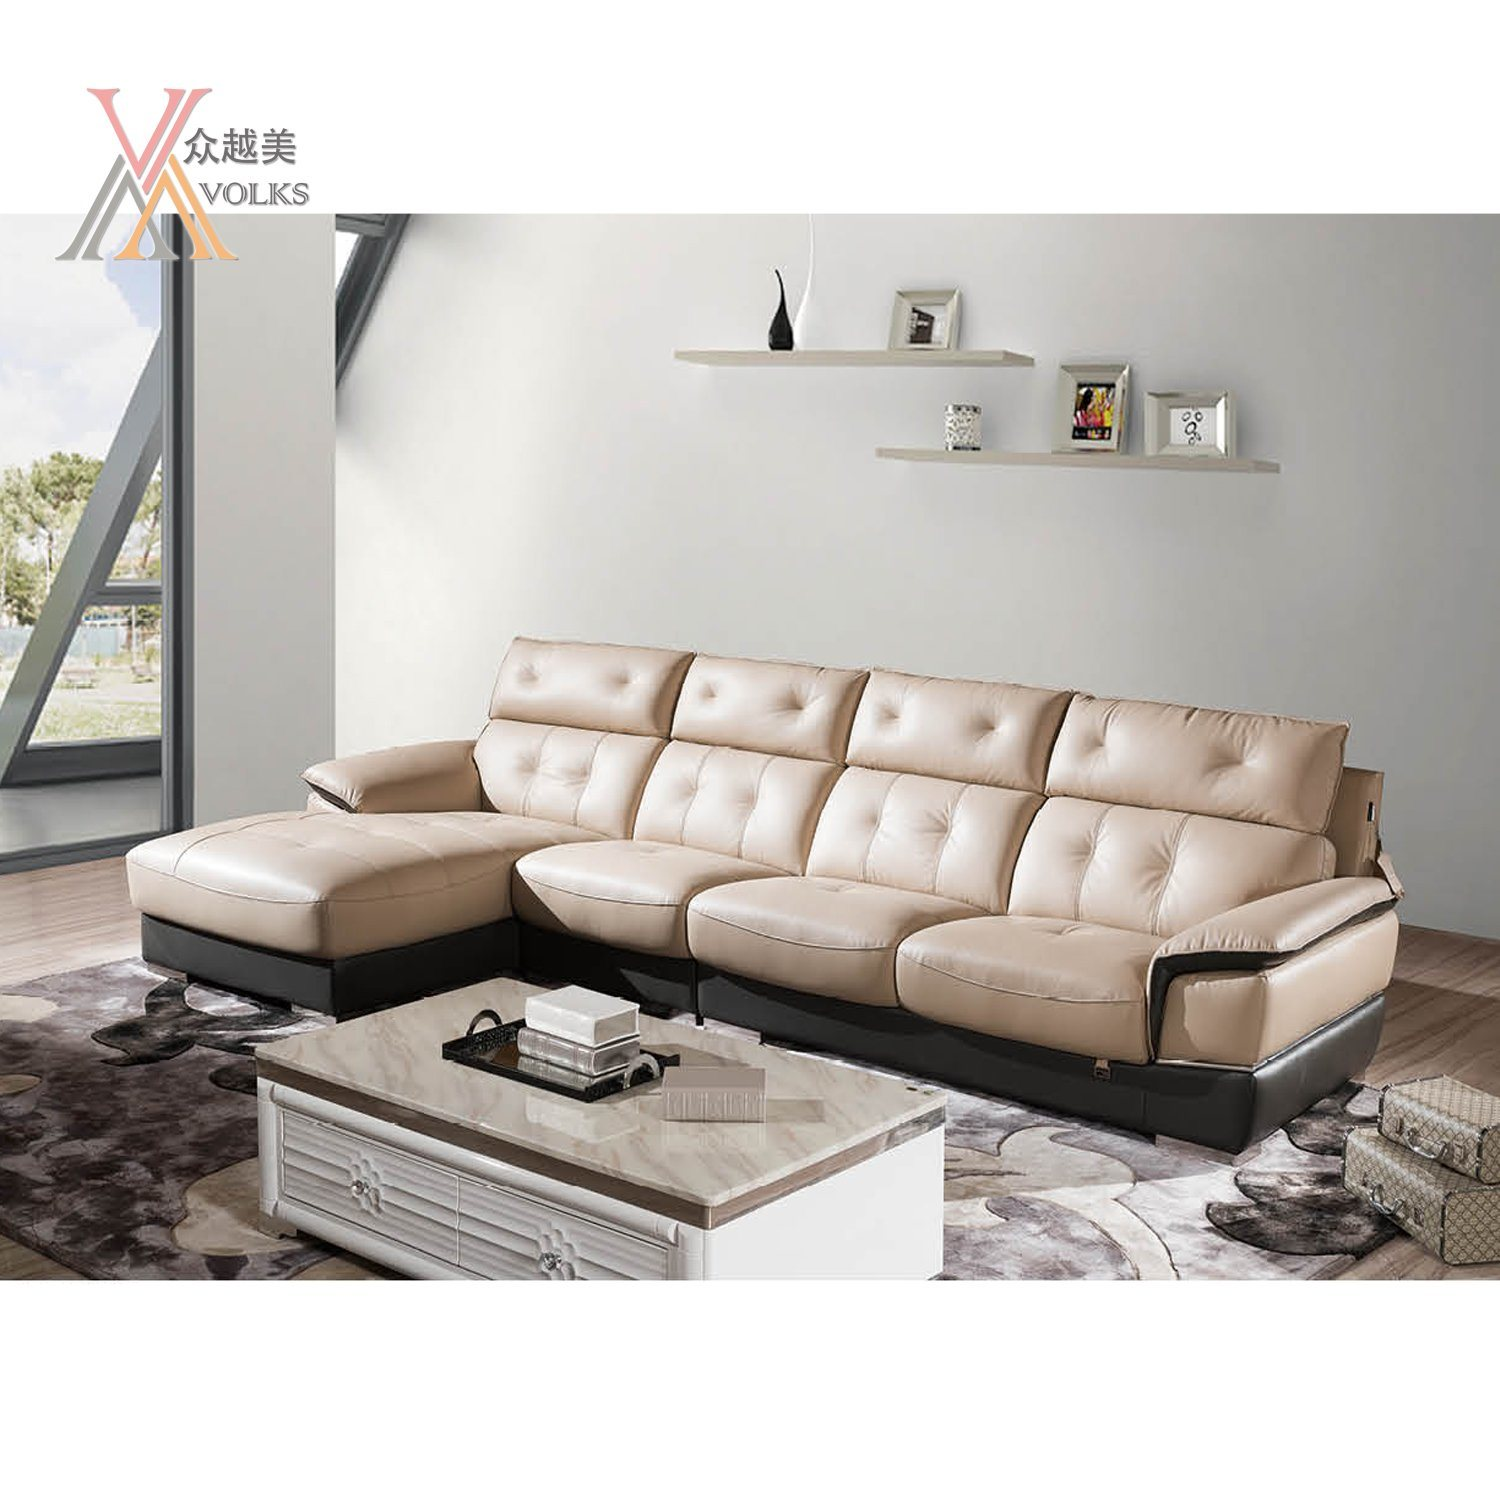 Modern Leather Sofa with Armrest (1652A)